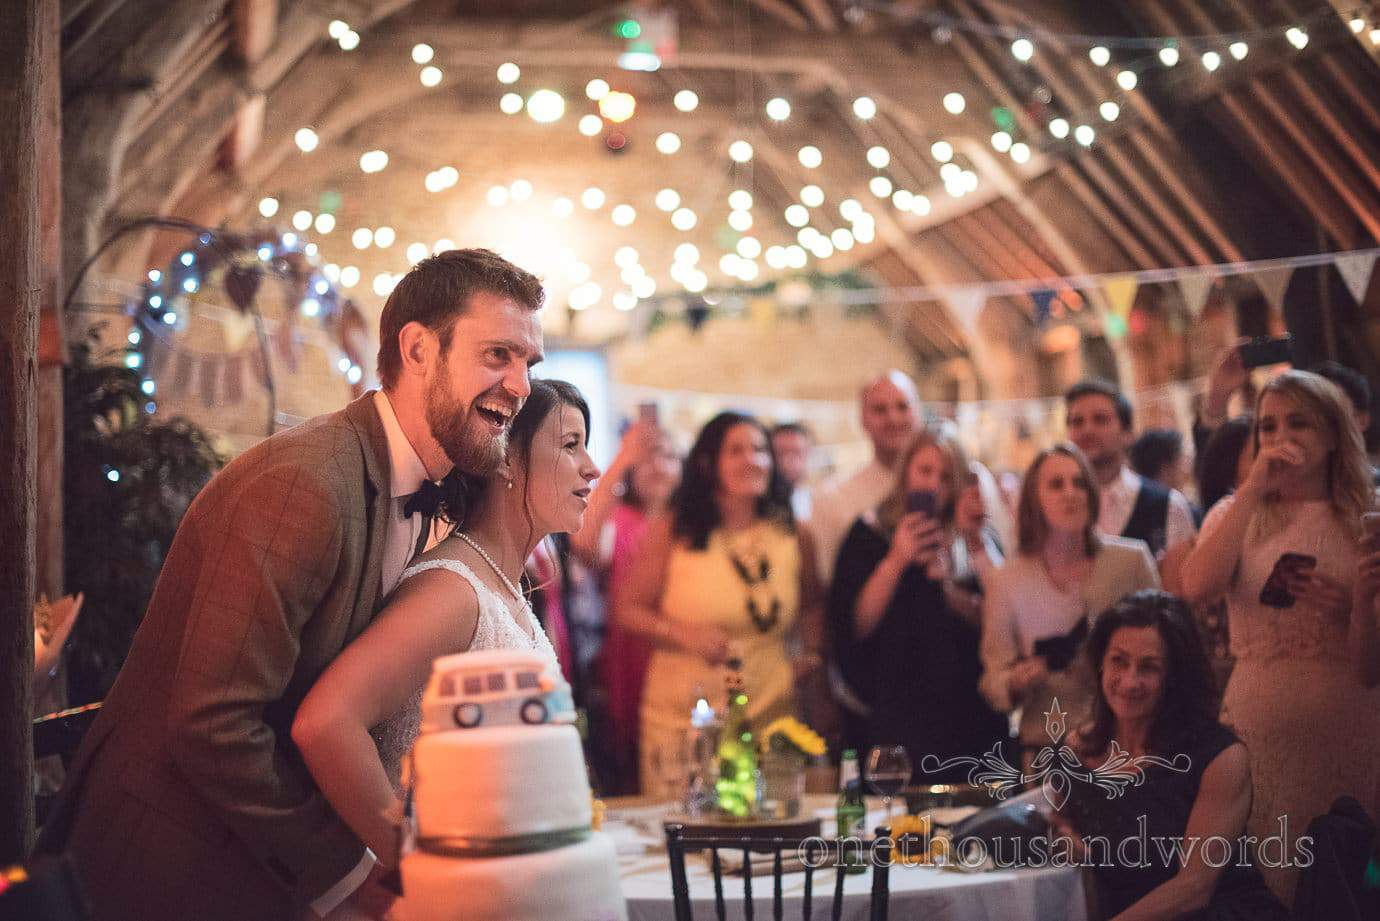 Wedding couple prepare to cut the cake in wooden fairy lit barn at rustic wedding